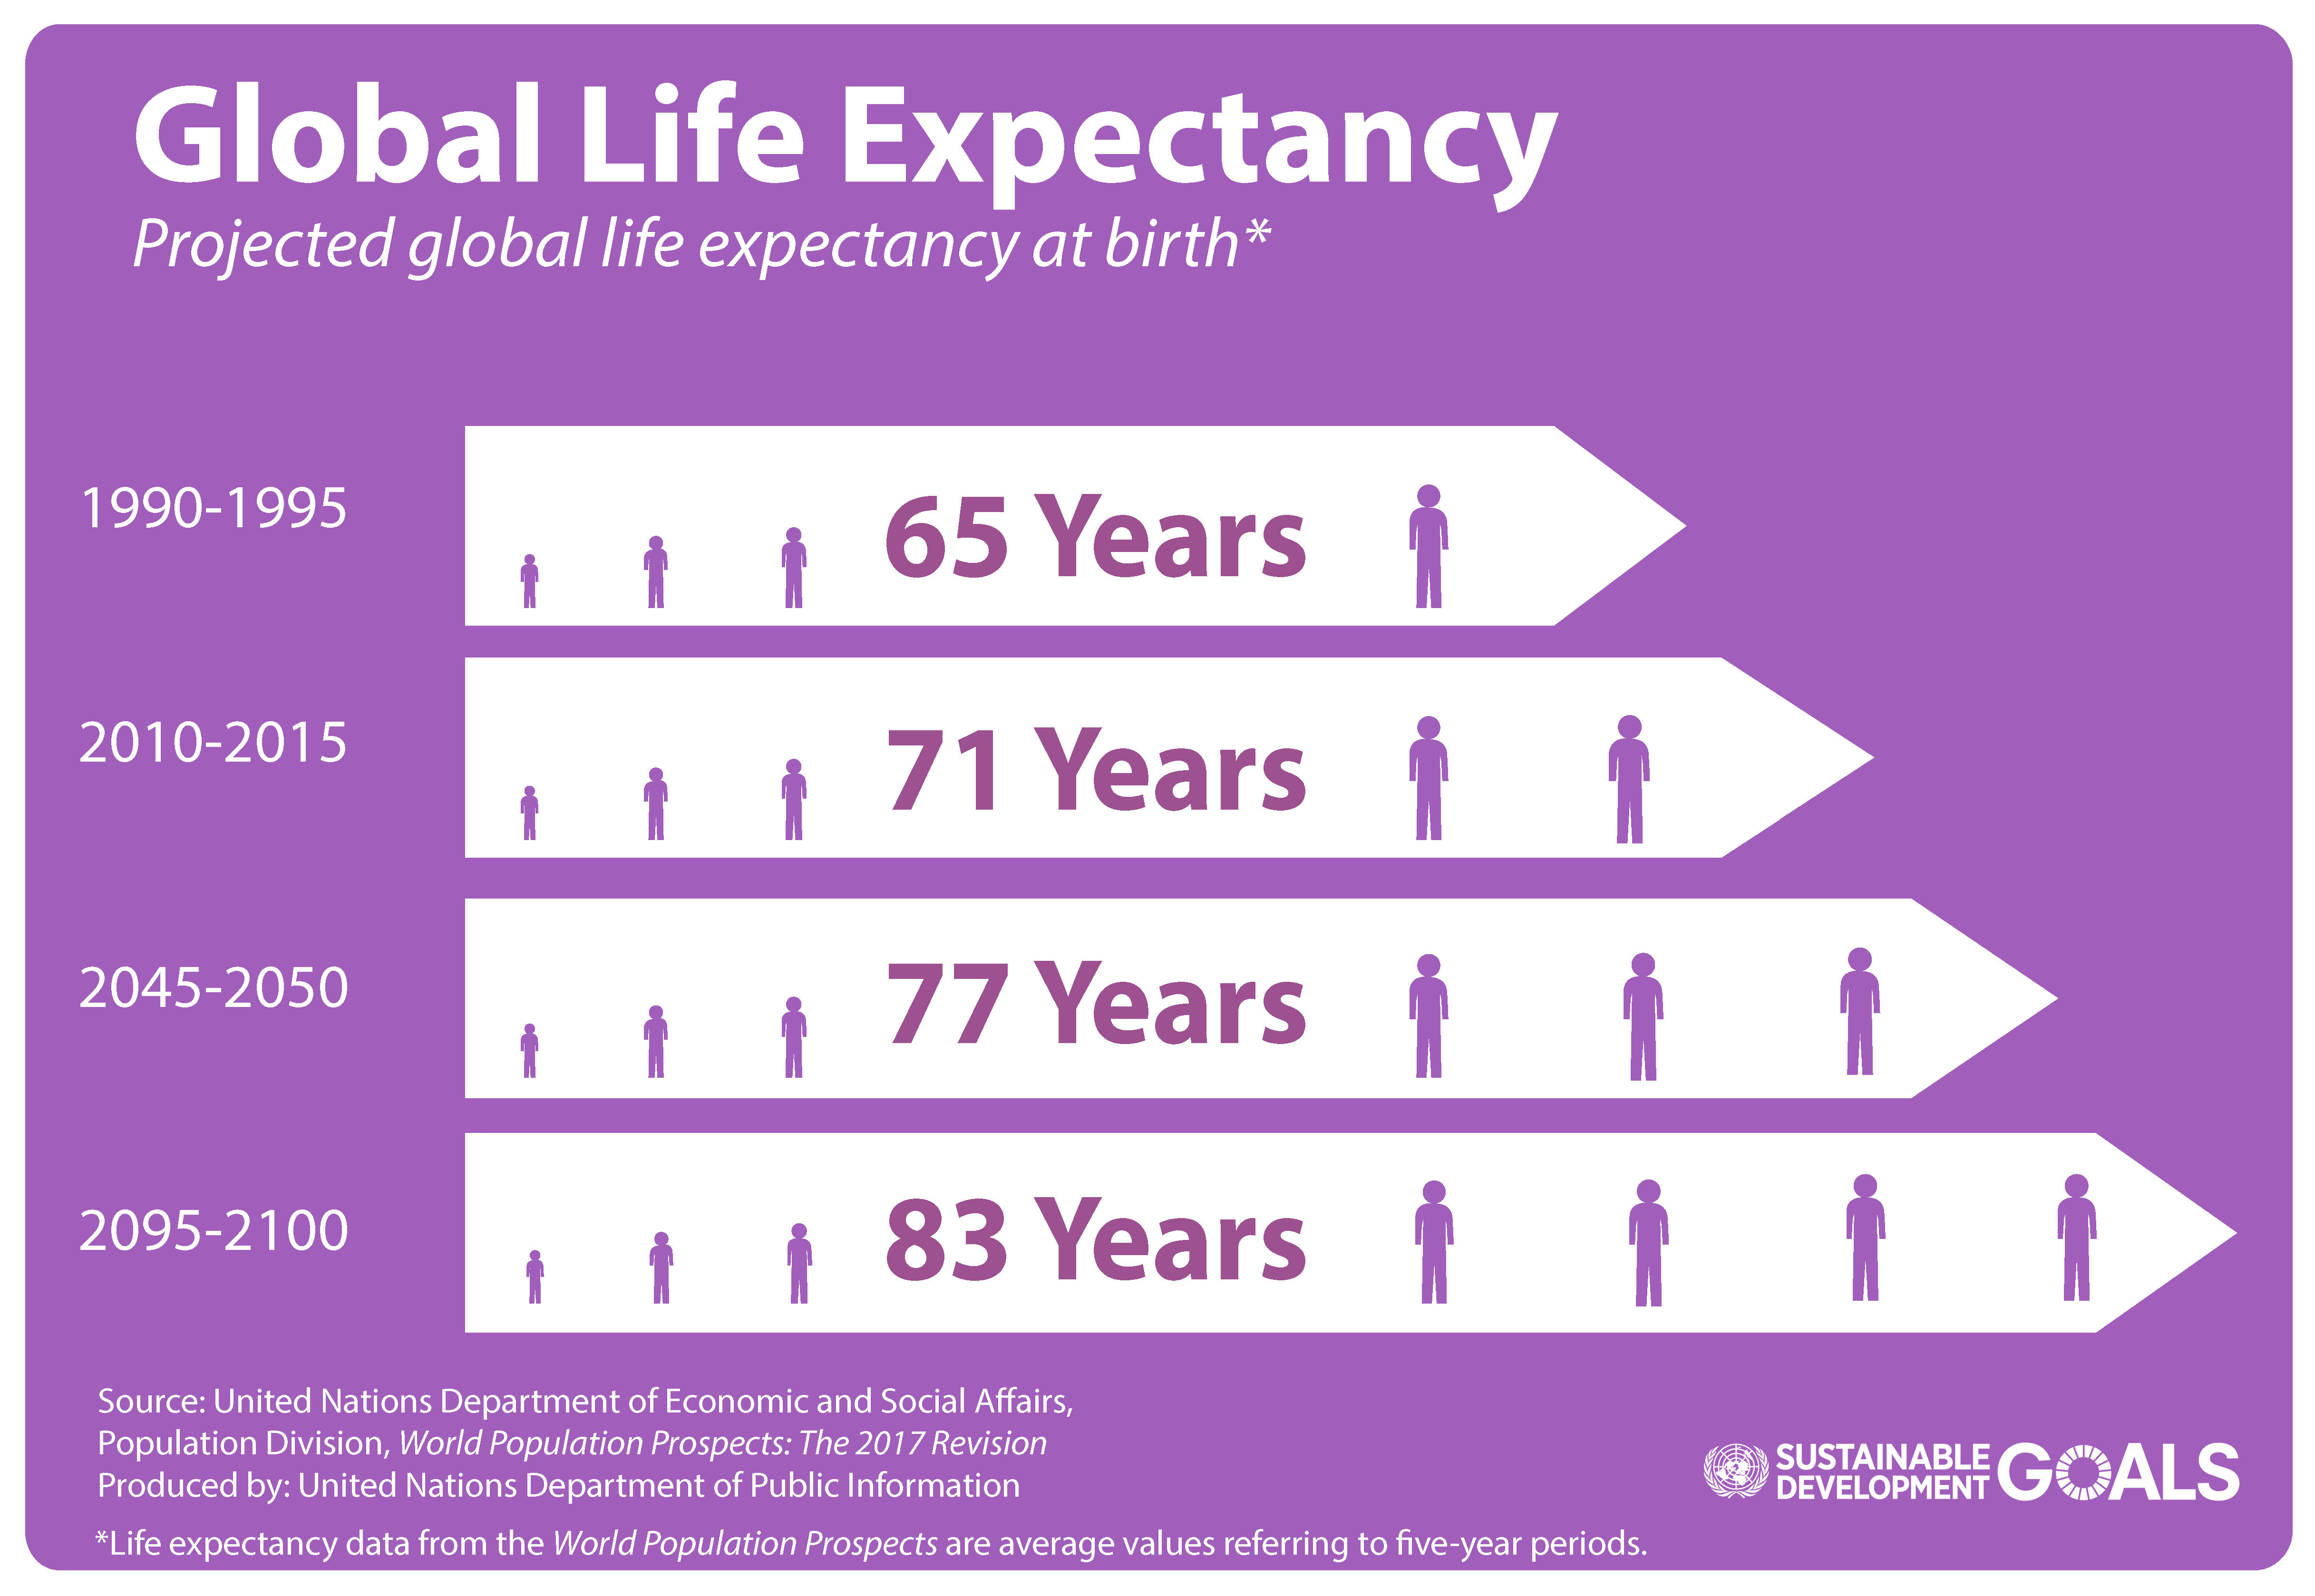 World Population Prospects 2017 Revision Global Life